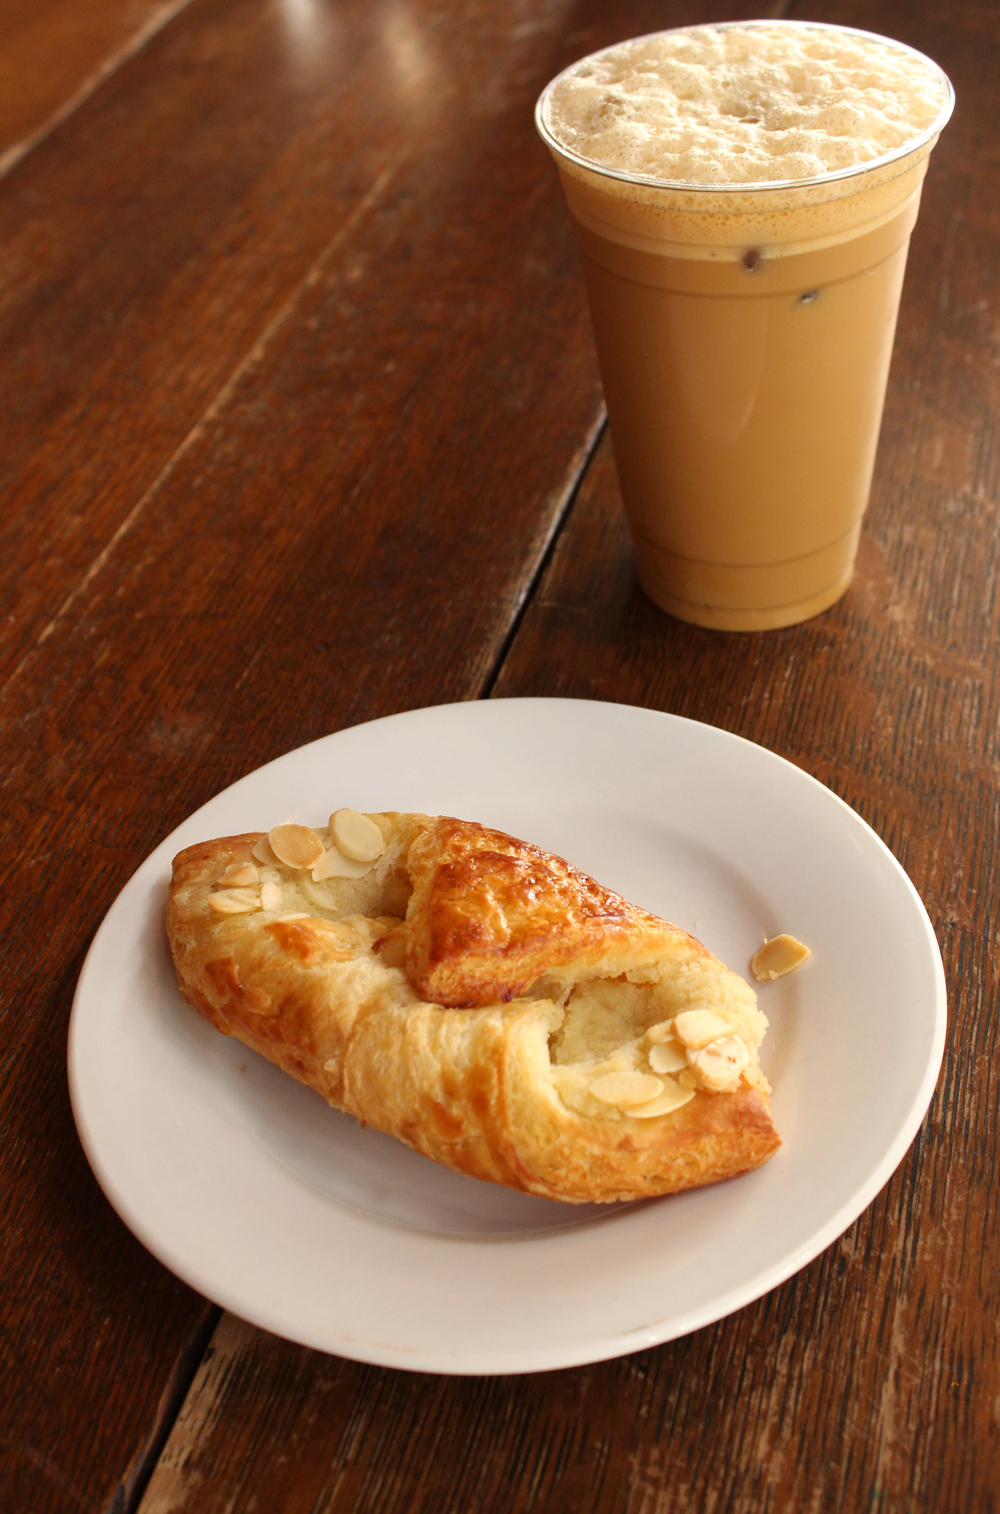 Cold Brew and Croissant